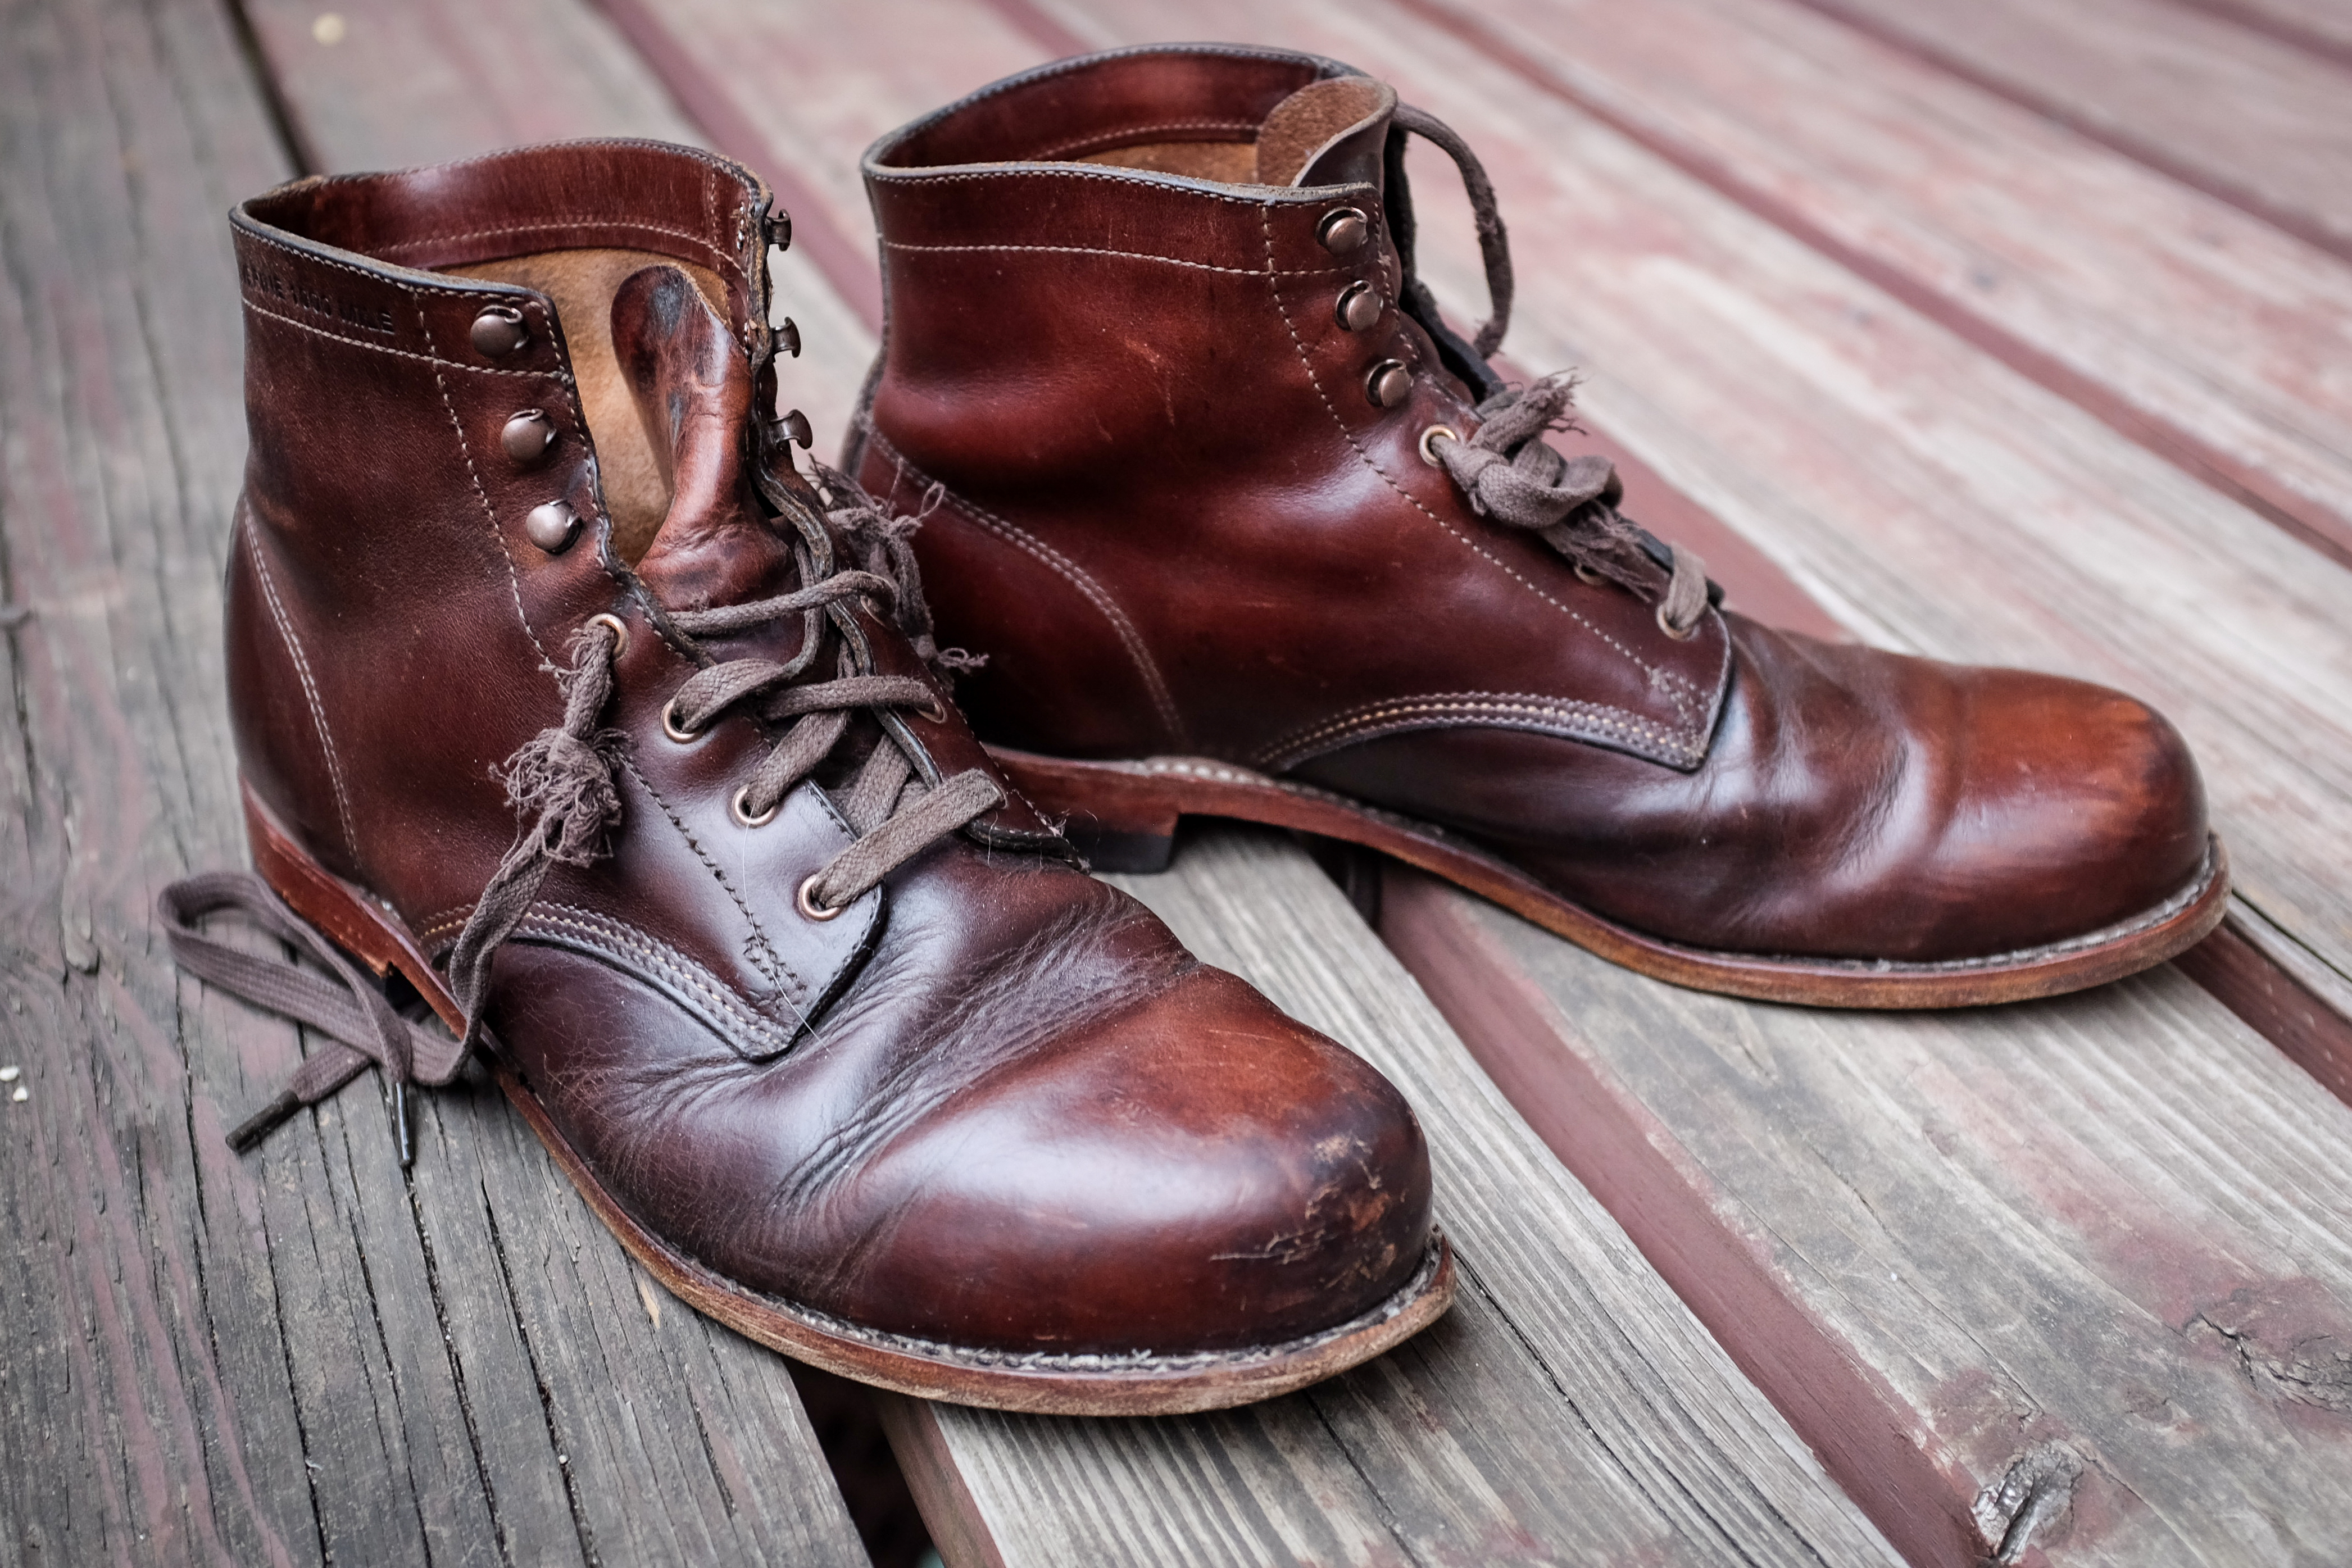 6bce8acff03 Wolverine 1000 Mile Boot Review | Page 427 | Styleforum